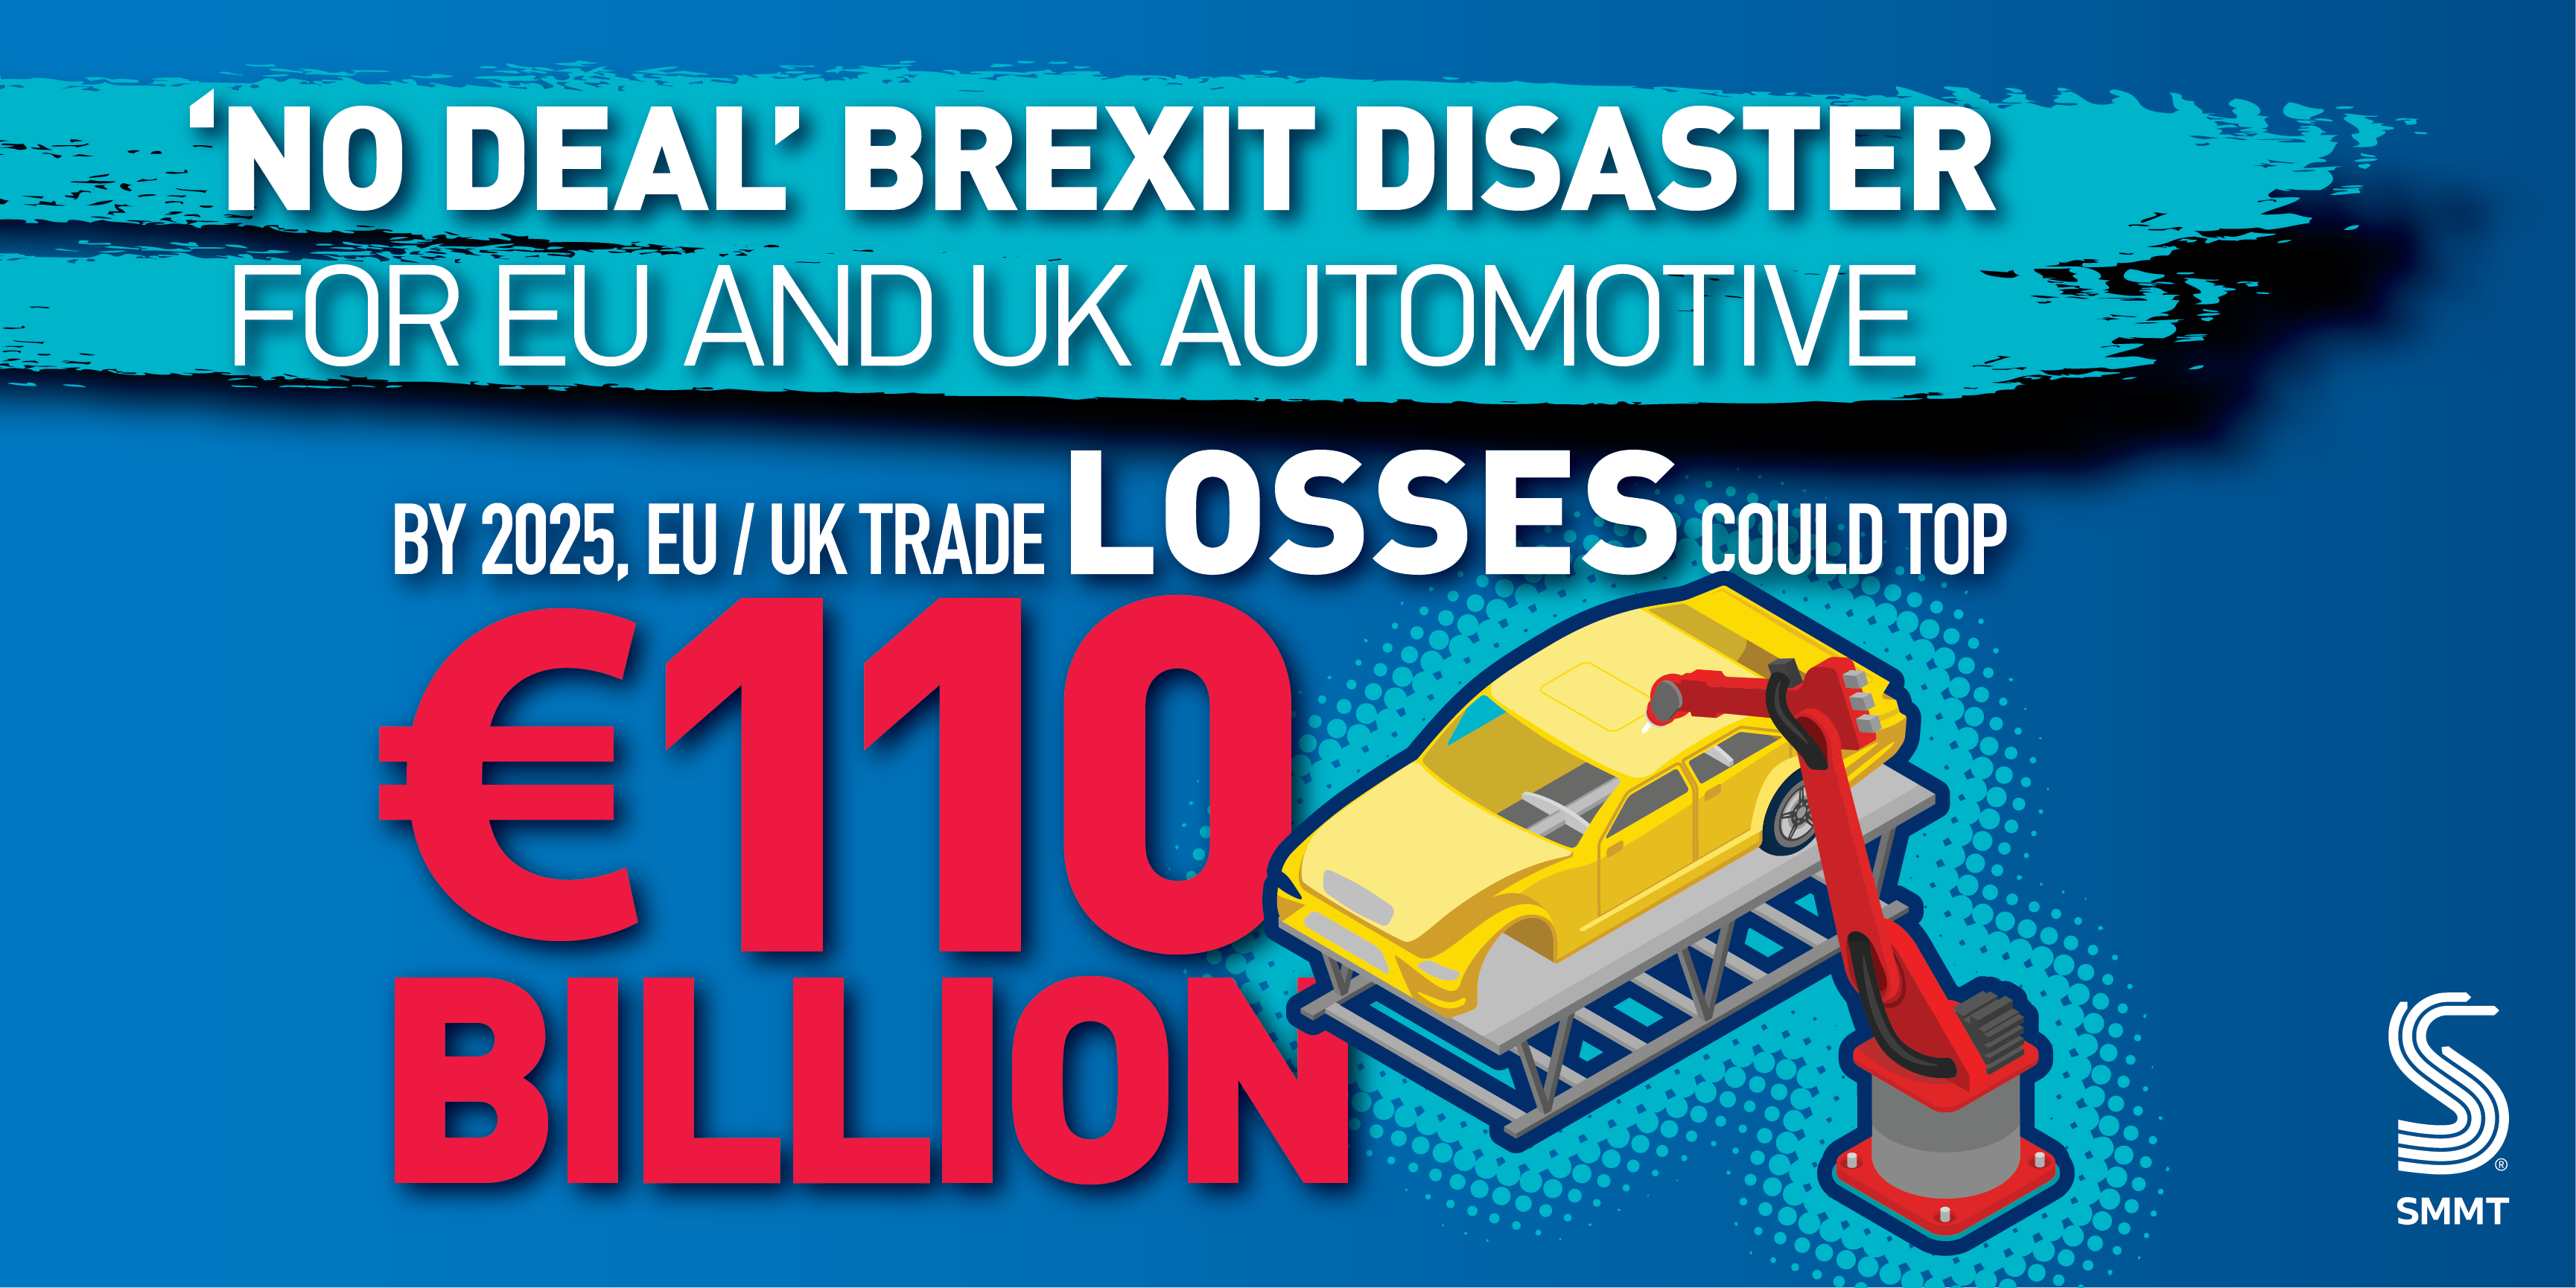 Only weeks left to save EU and UK auto sectors from €110 billion 'no deal' Brexit disaster